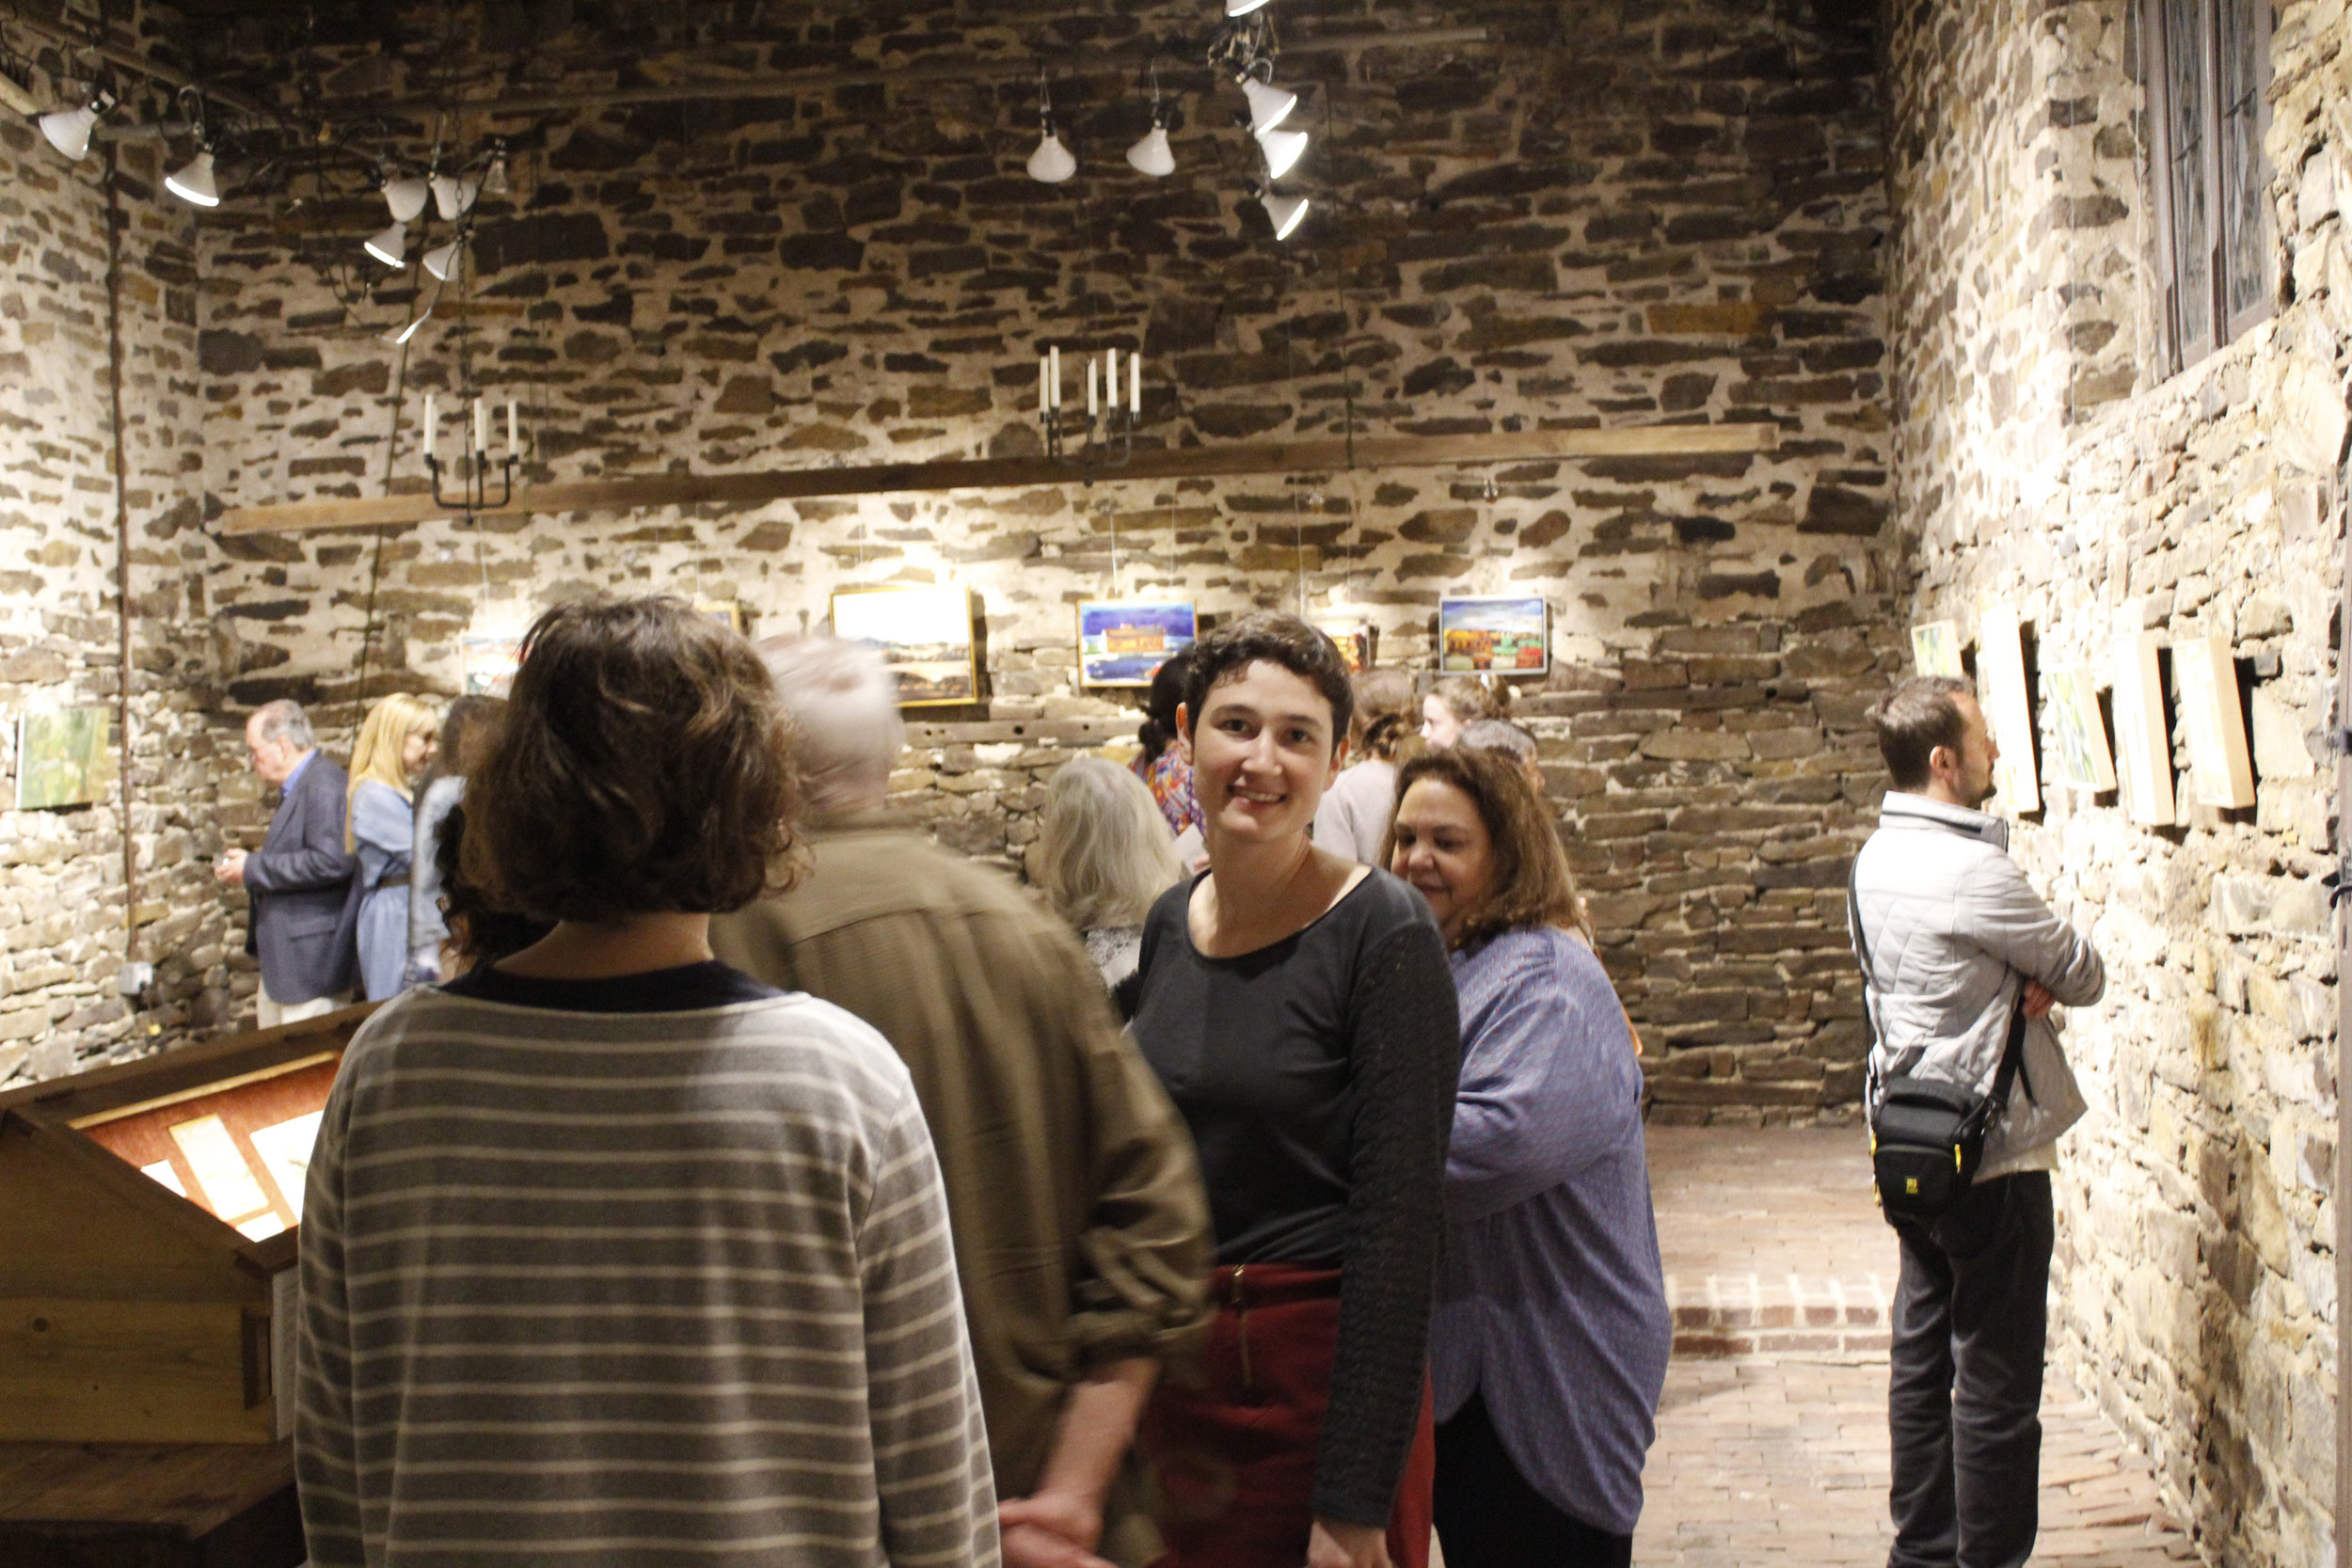 Artist Rotem Amizur and guests in the Chapel Gallery, paintings by Albert Kresch, opening reception 2018.